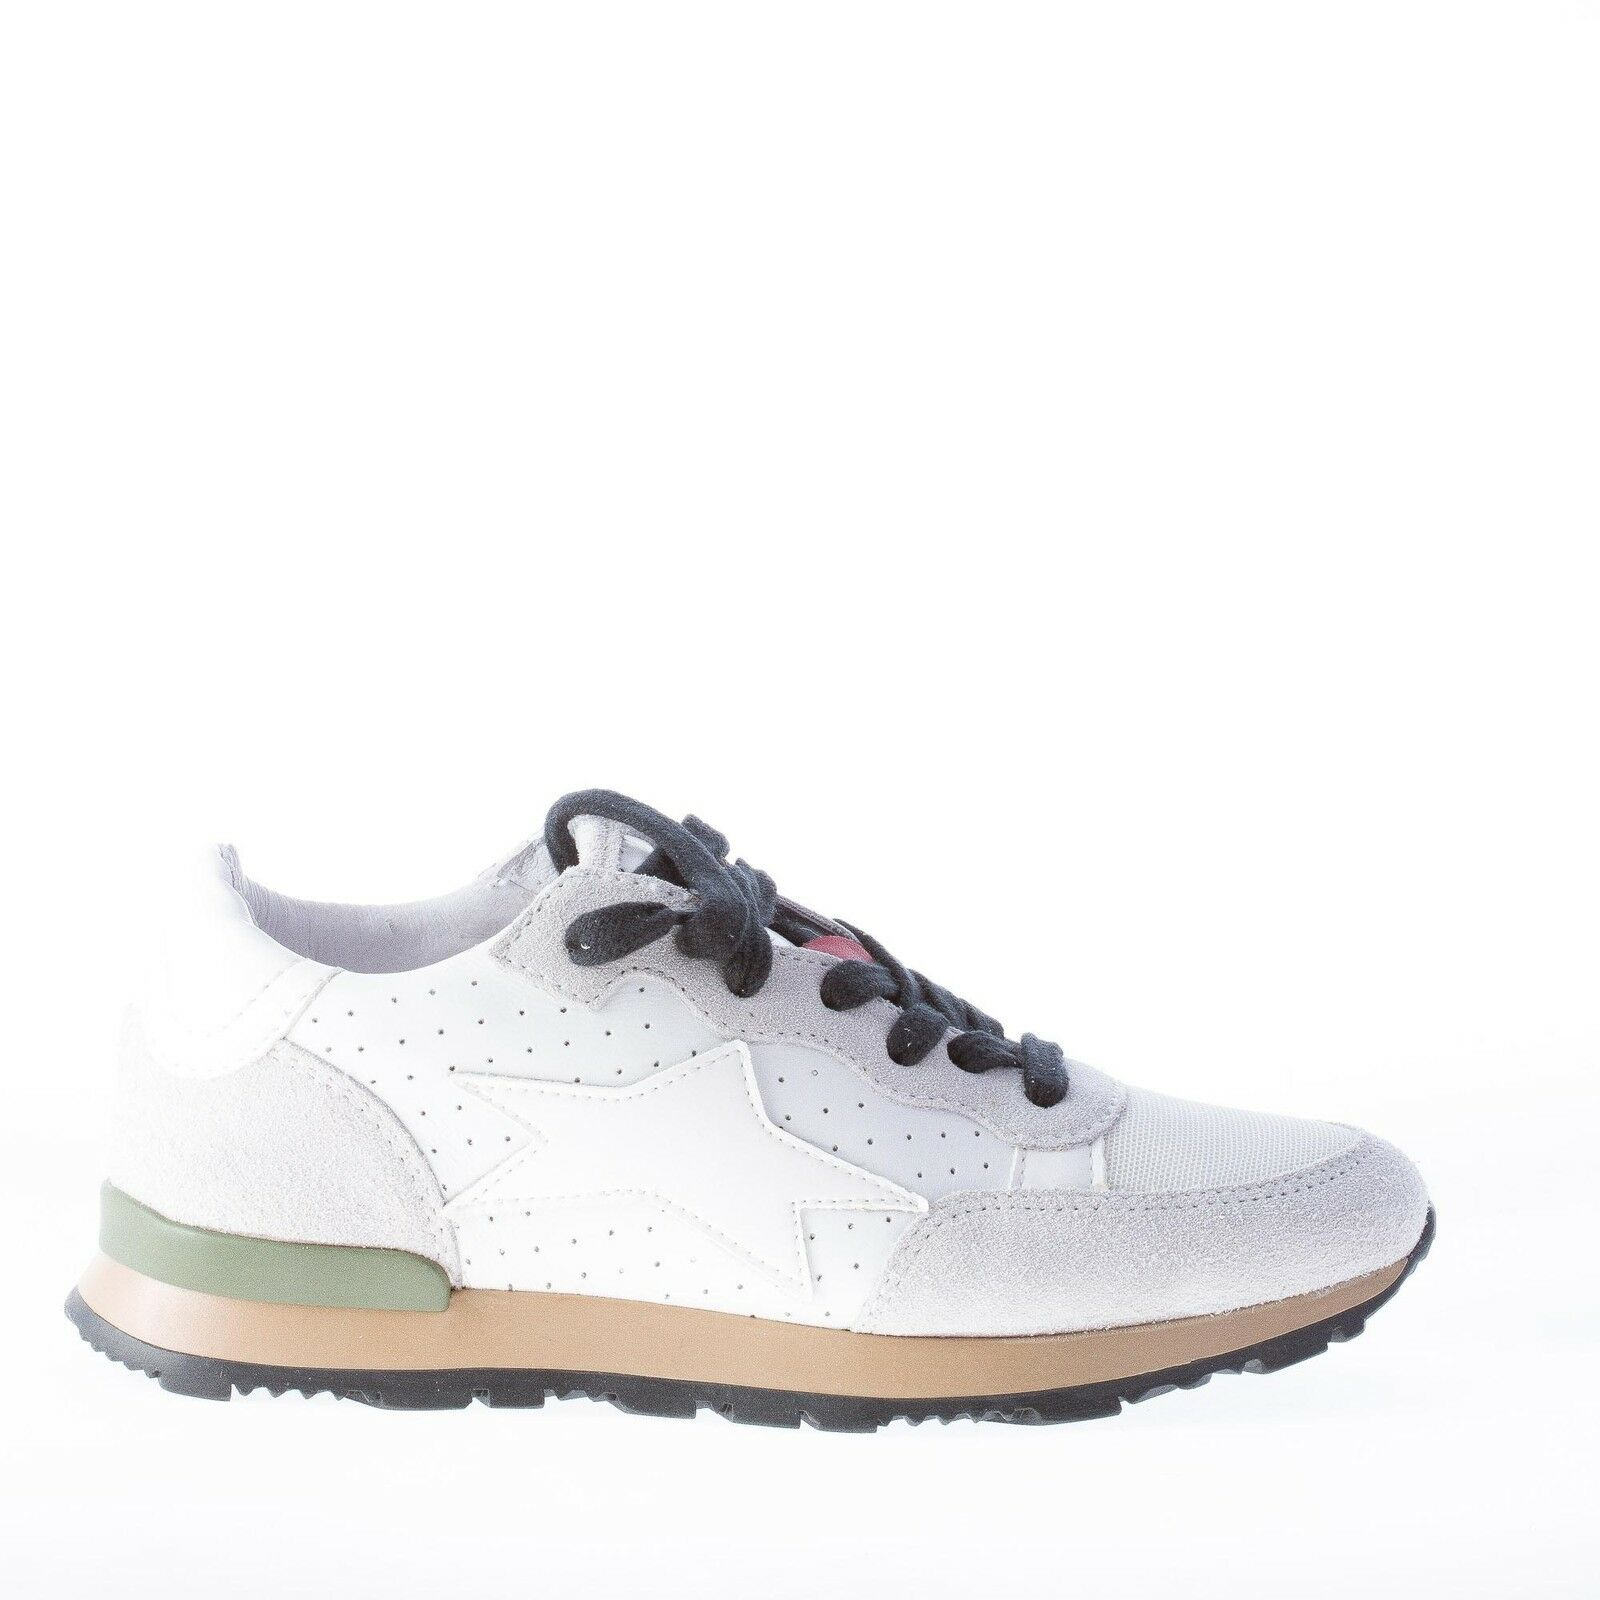 ISHIKAWA women shoes White Running leather and fabric sneaker with grey suede